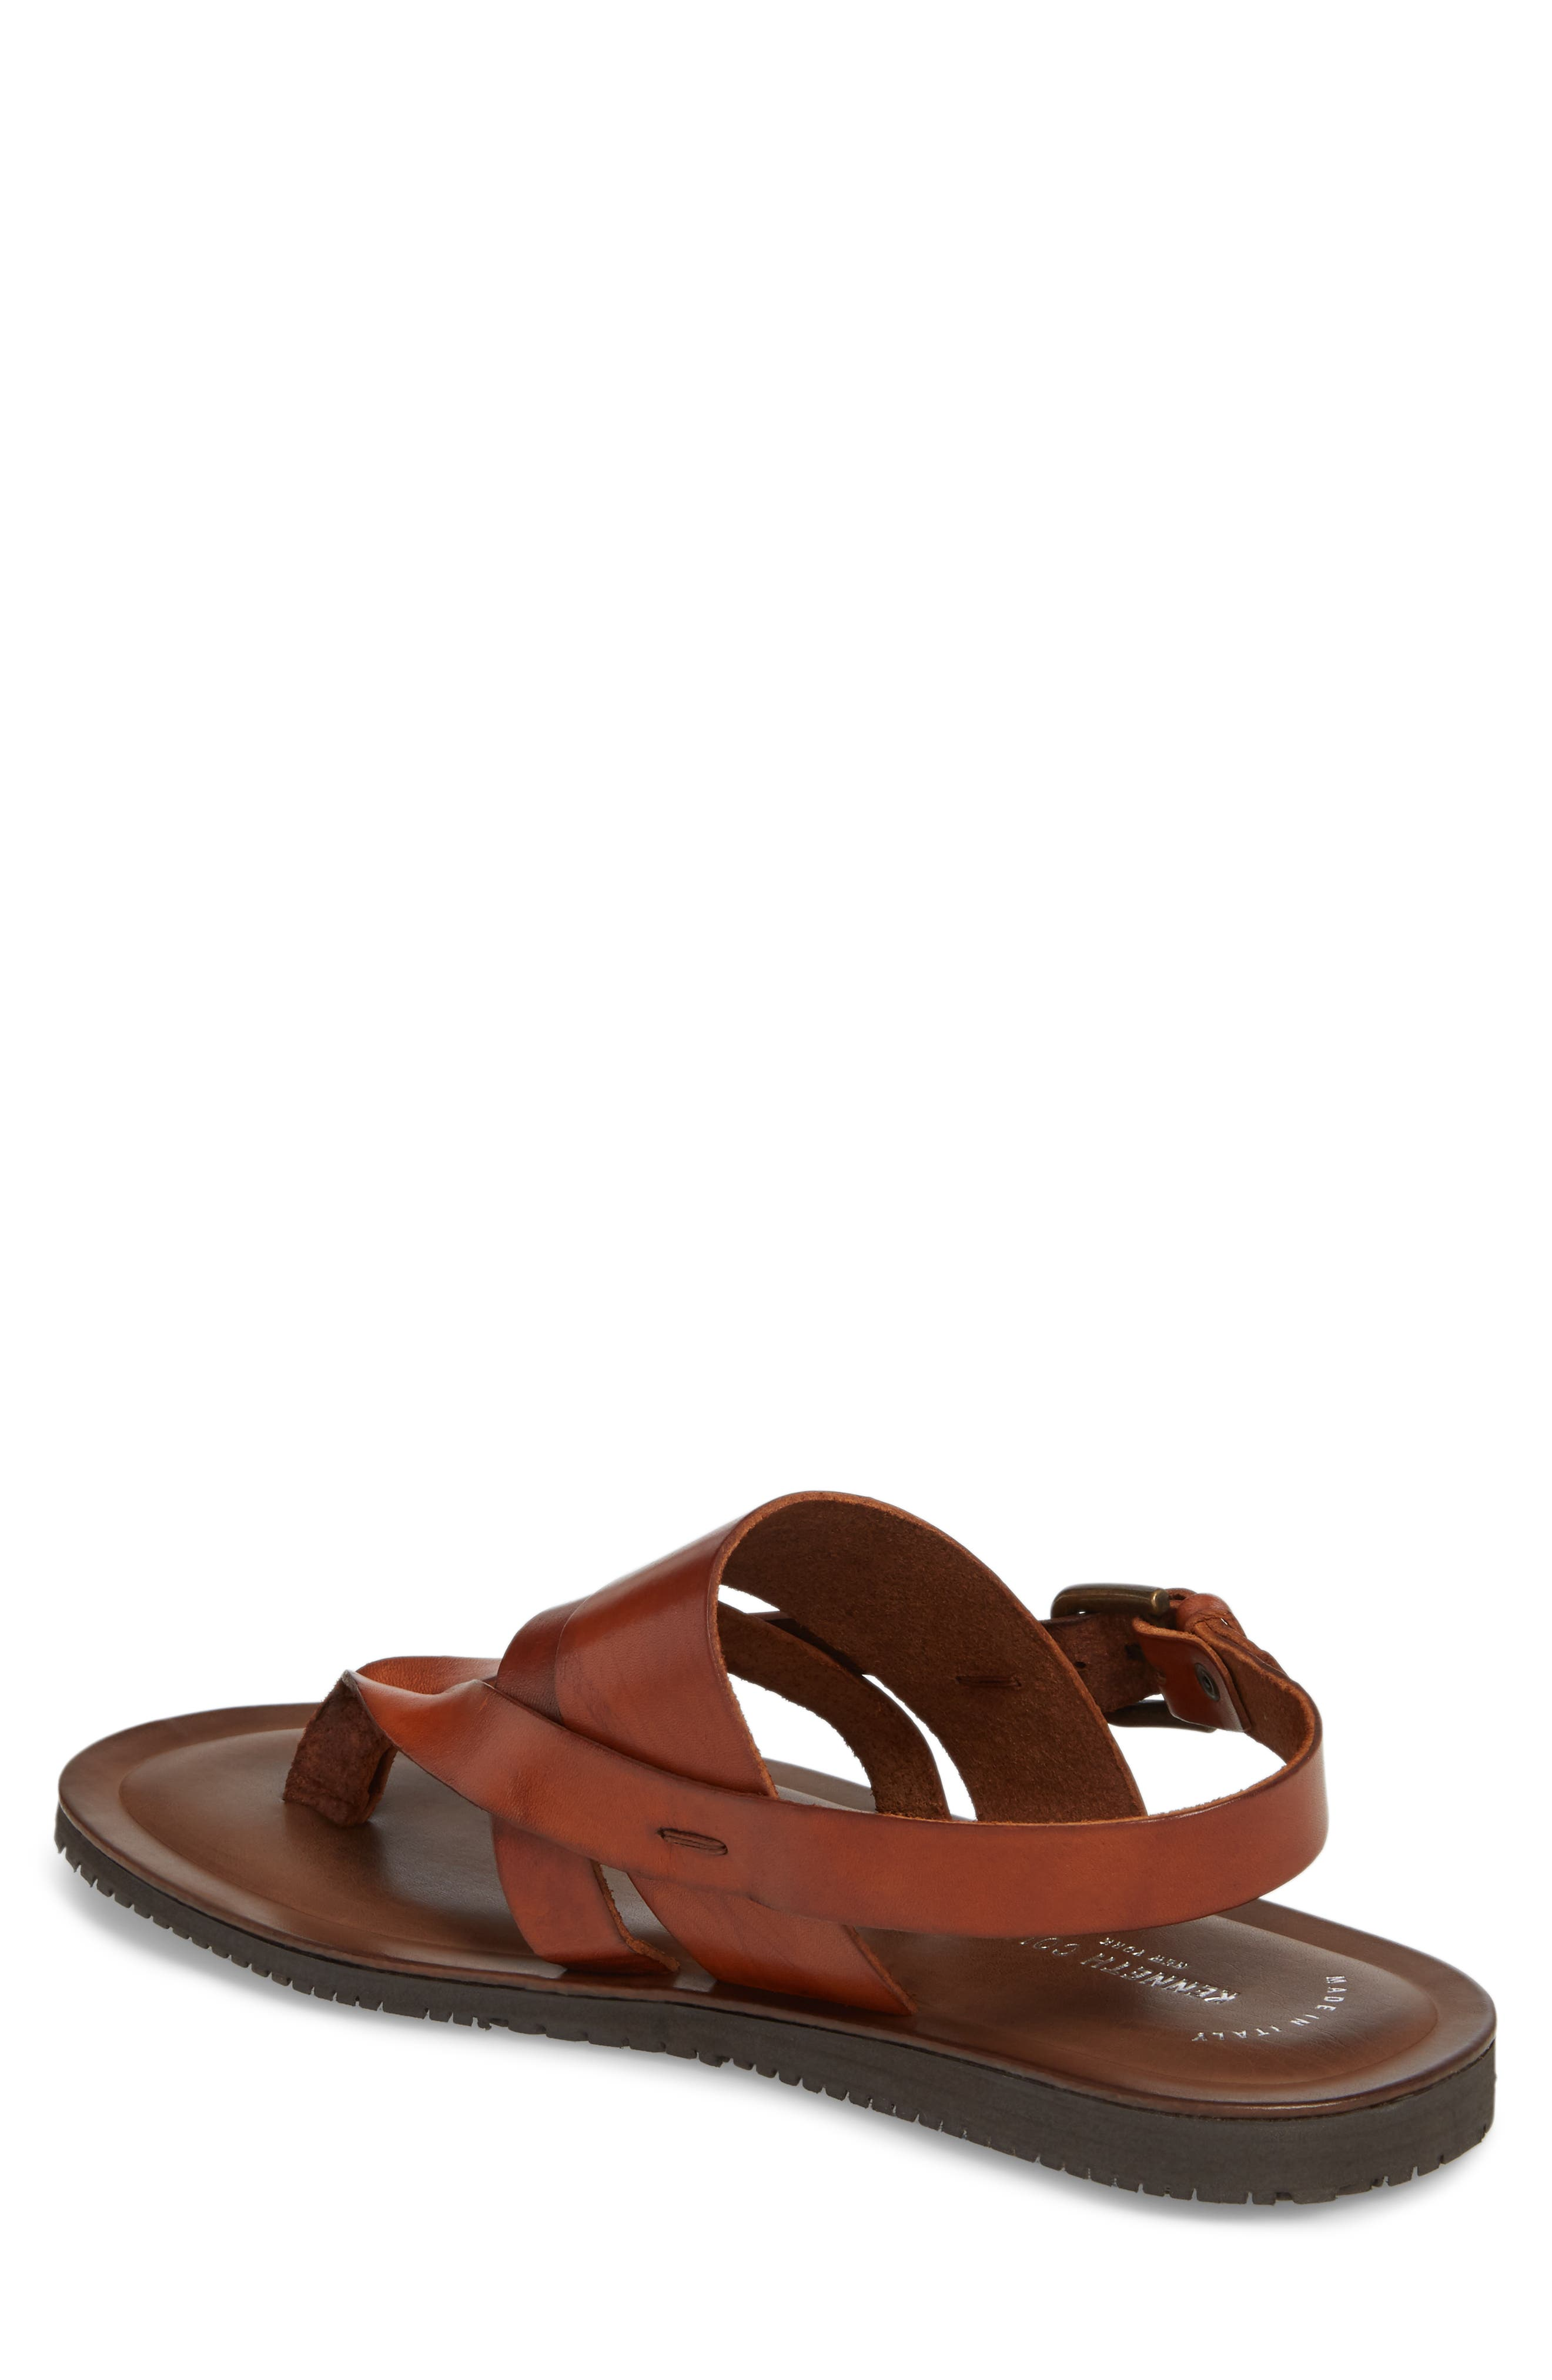 KENNETH COLE NEW YORK, 'Reel-Ist' Sandal, Alternate thumbnail 2, color, COGNAC LEATHER